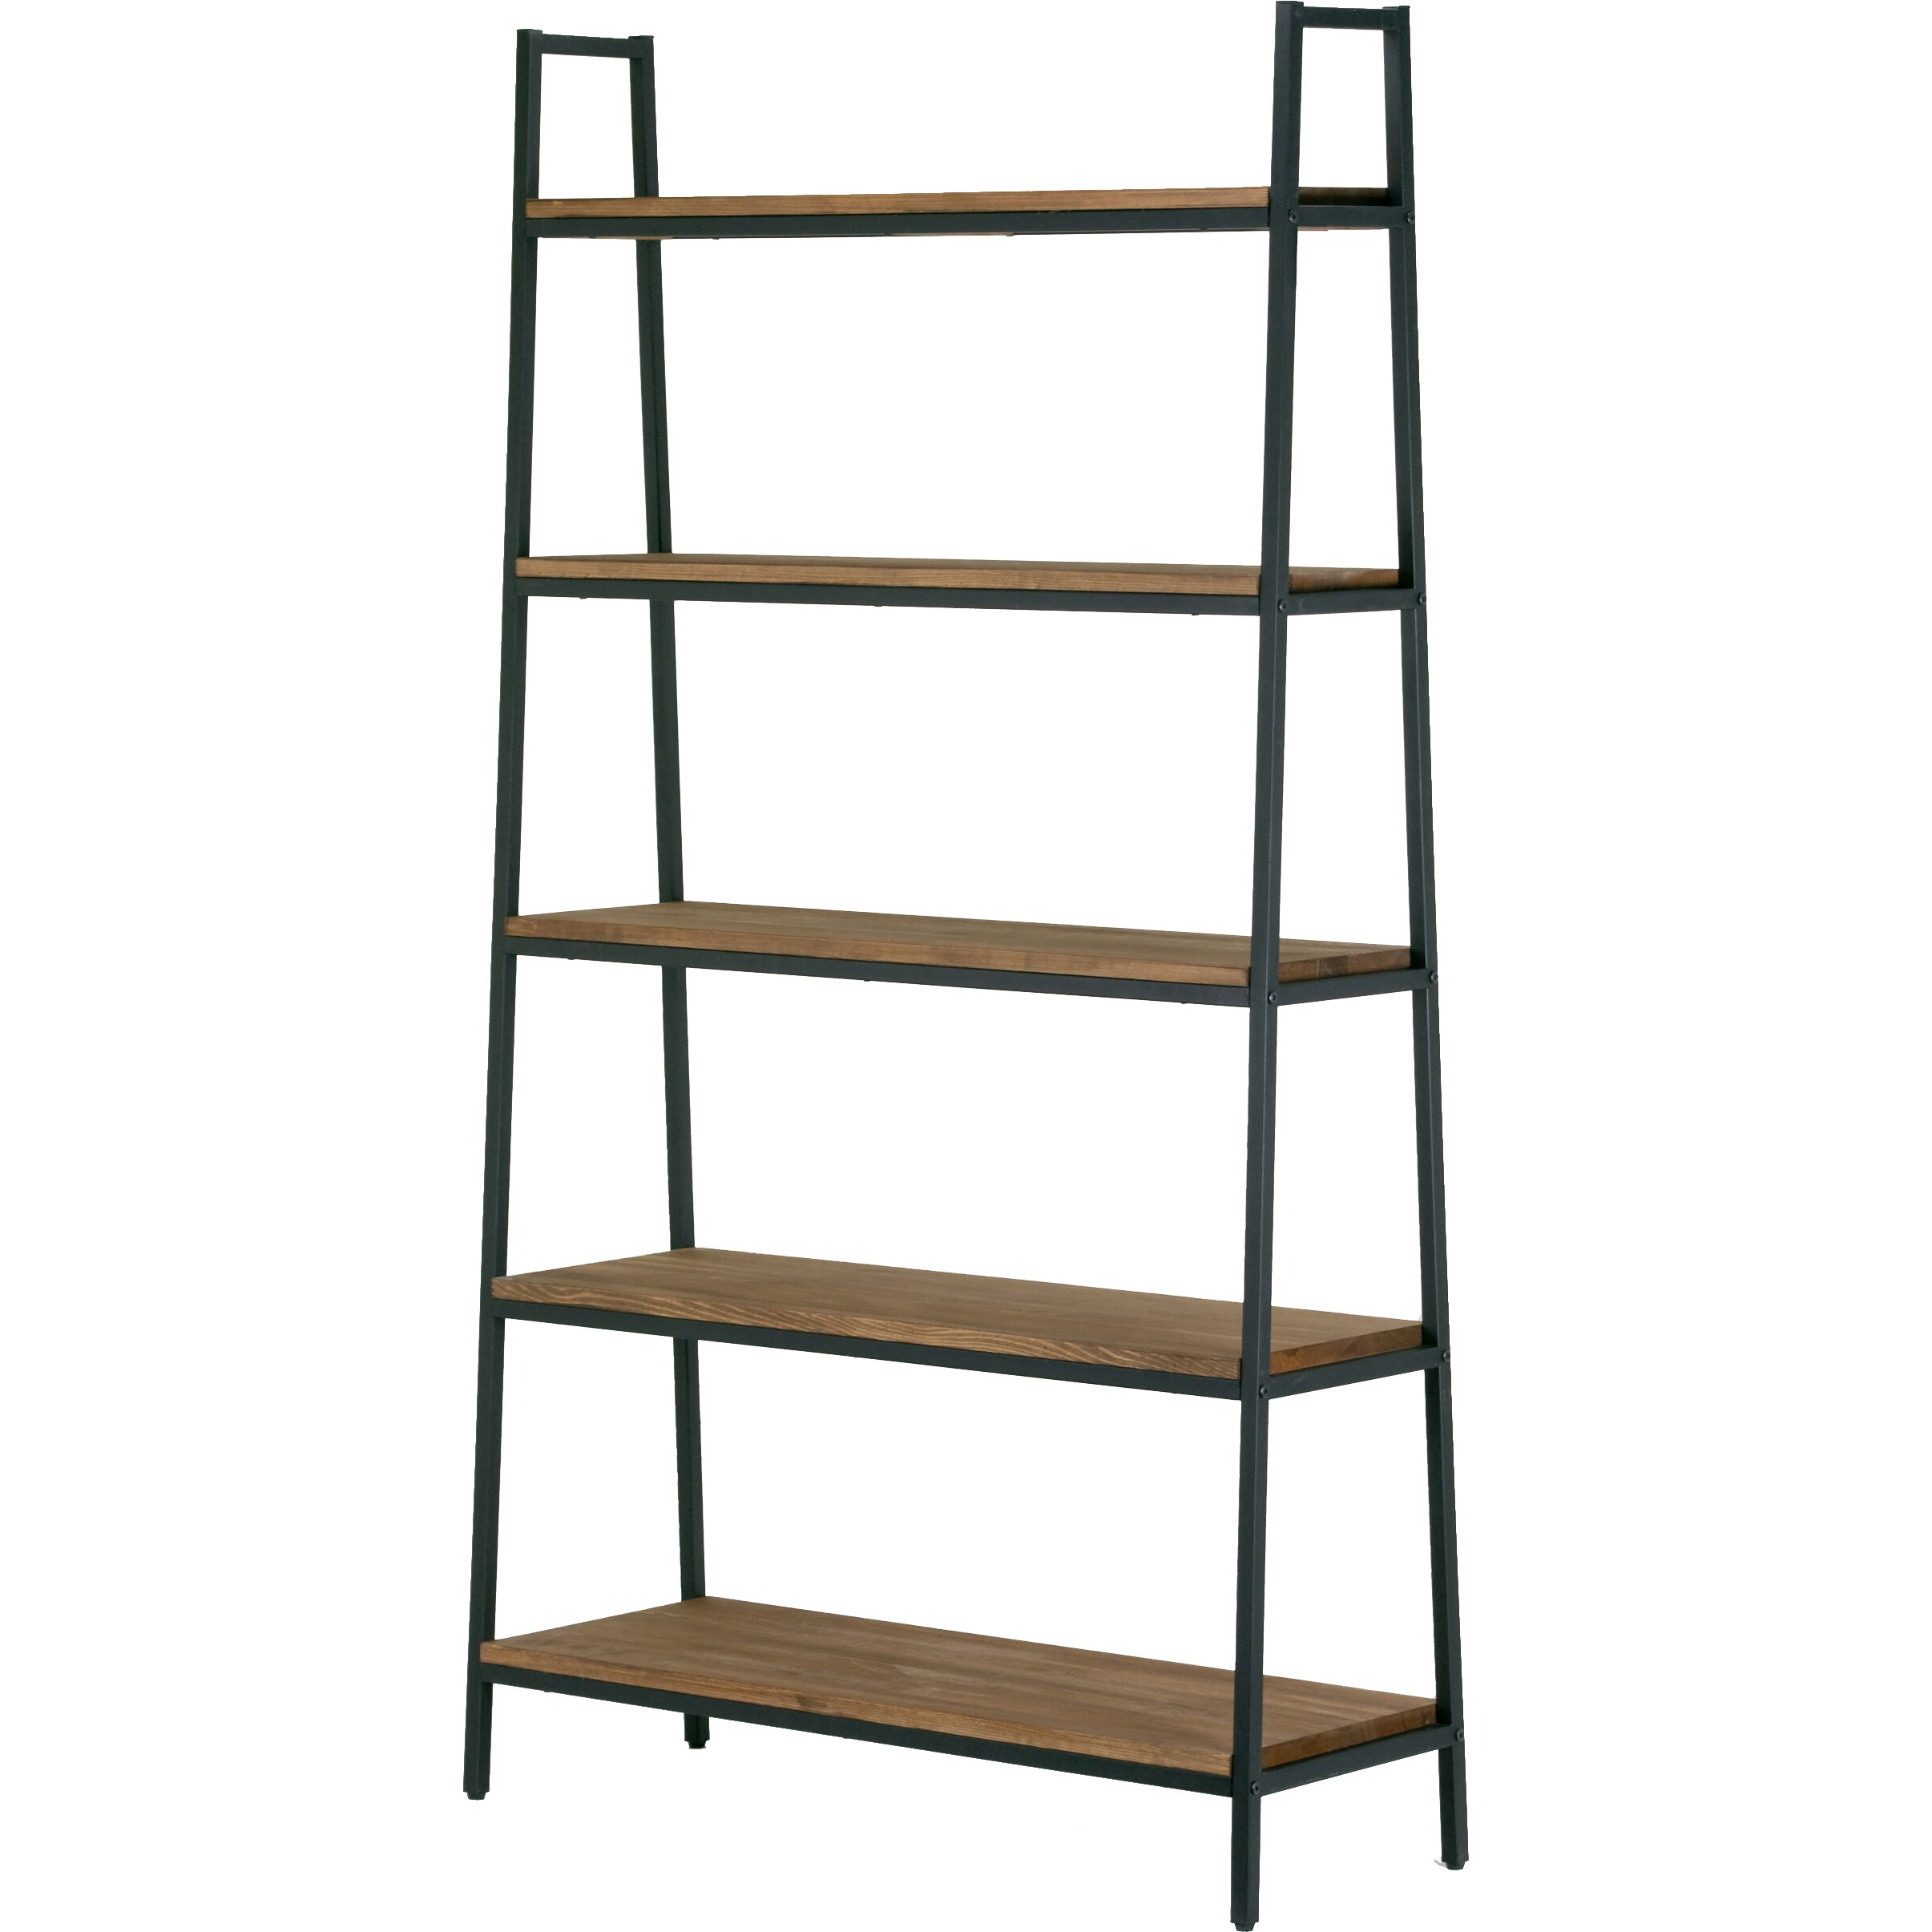 Glamour home decor ailis 72 etagere bookcase wayfair for Home decorators bookcase